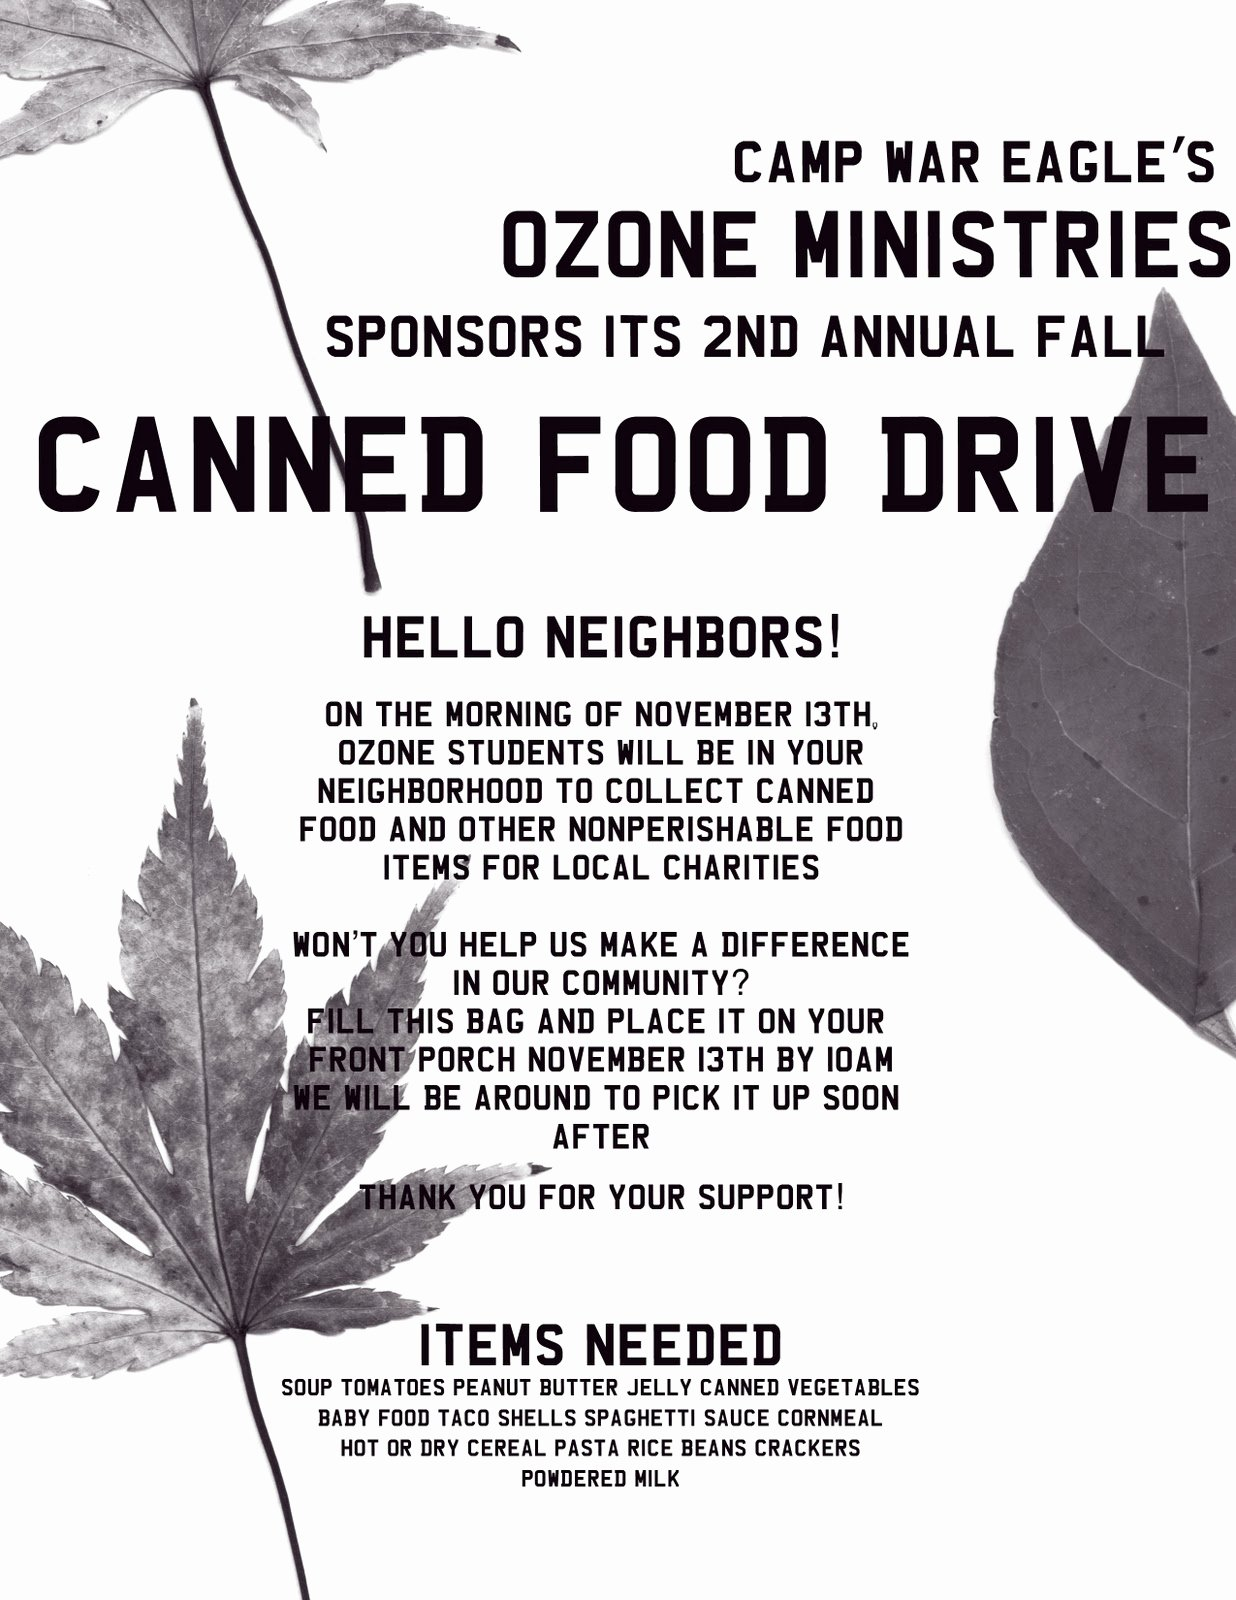 Canned Food Drive Flyer Template New Camp War Eagle 365 Canned Food Drive